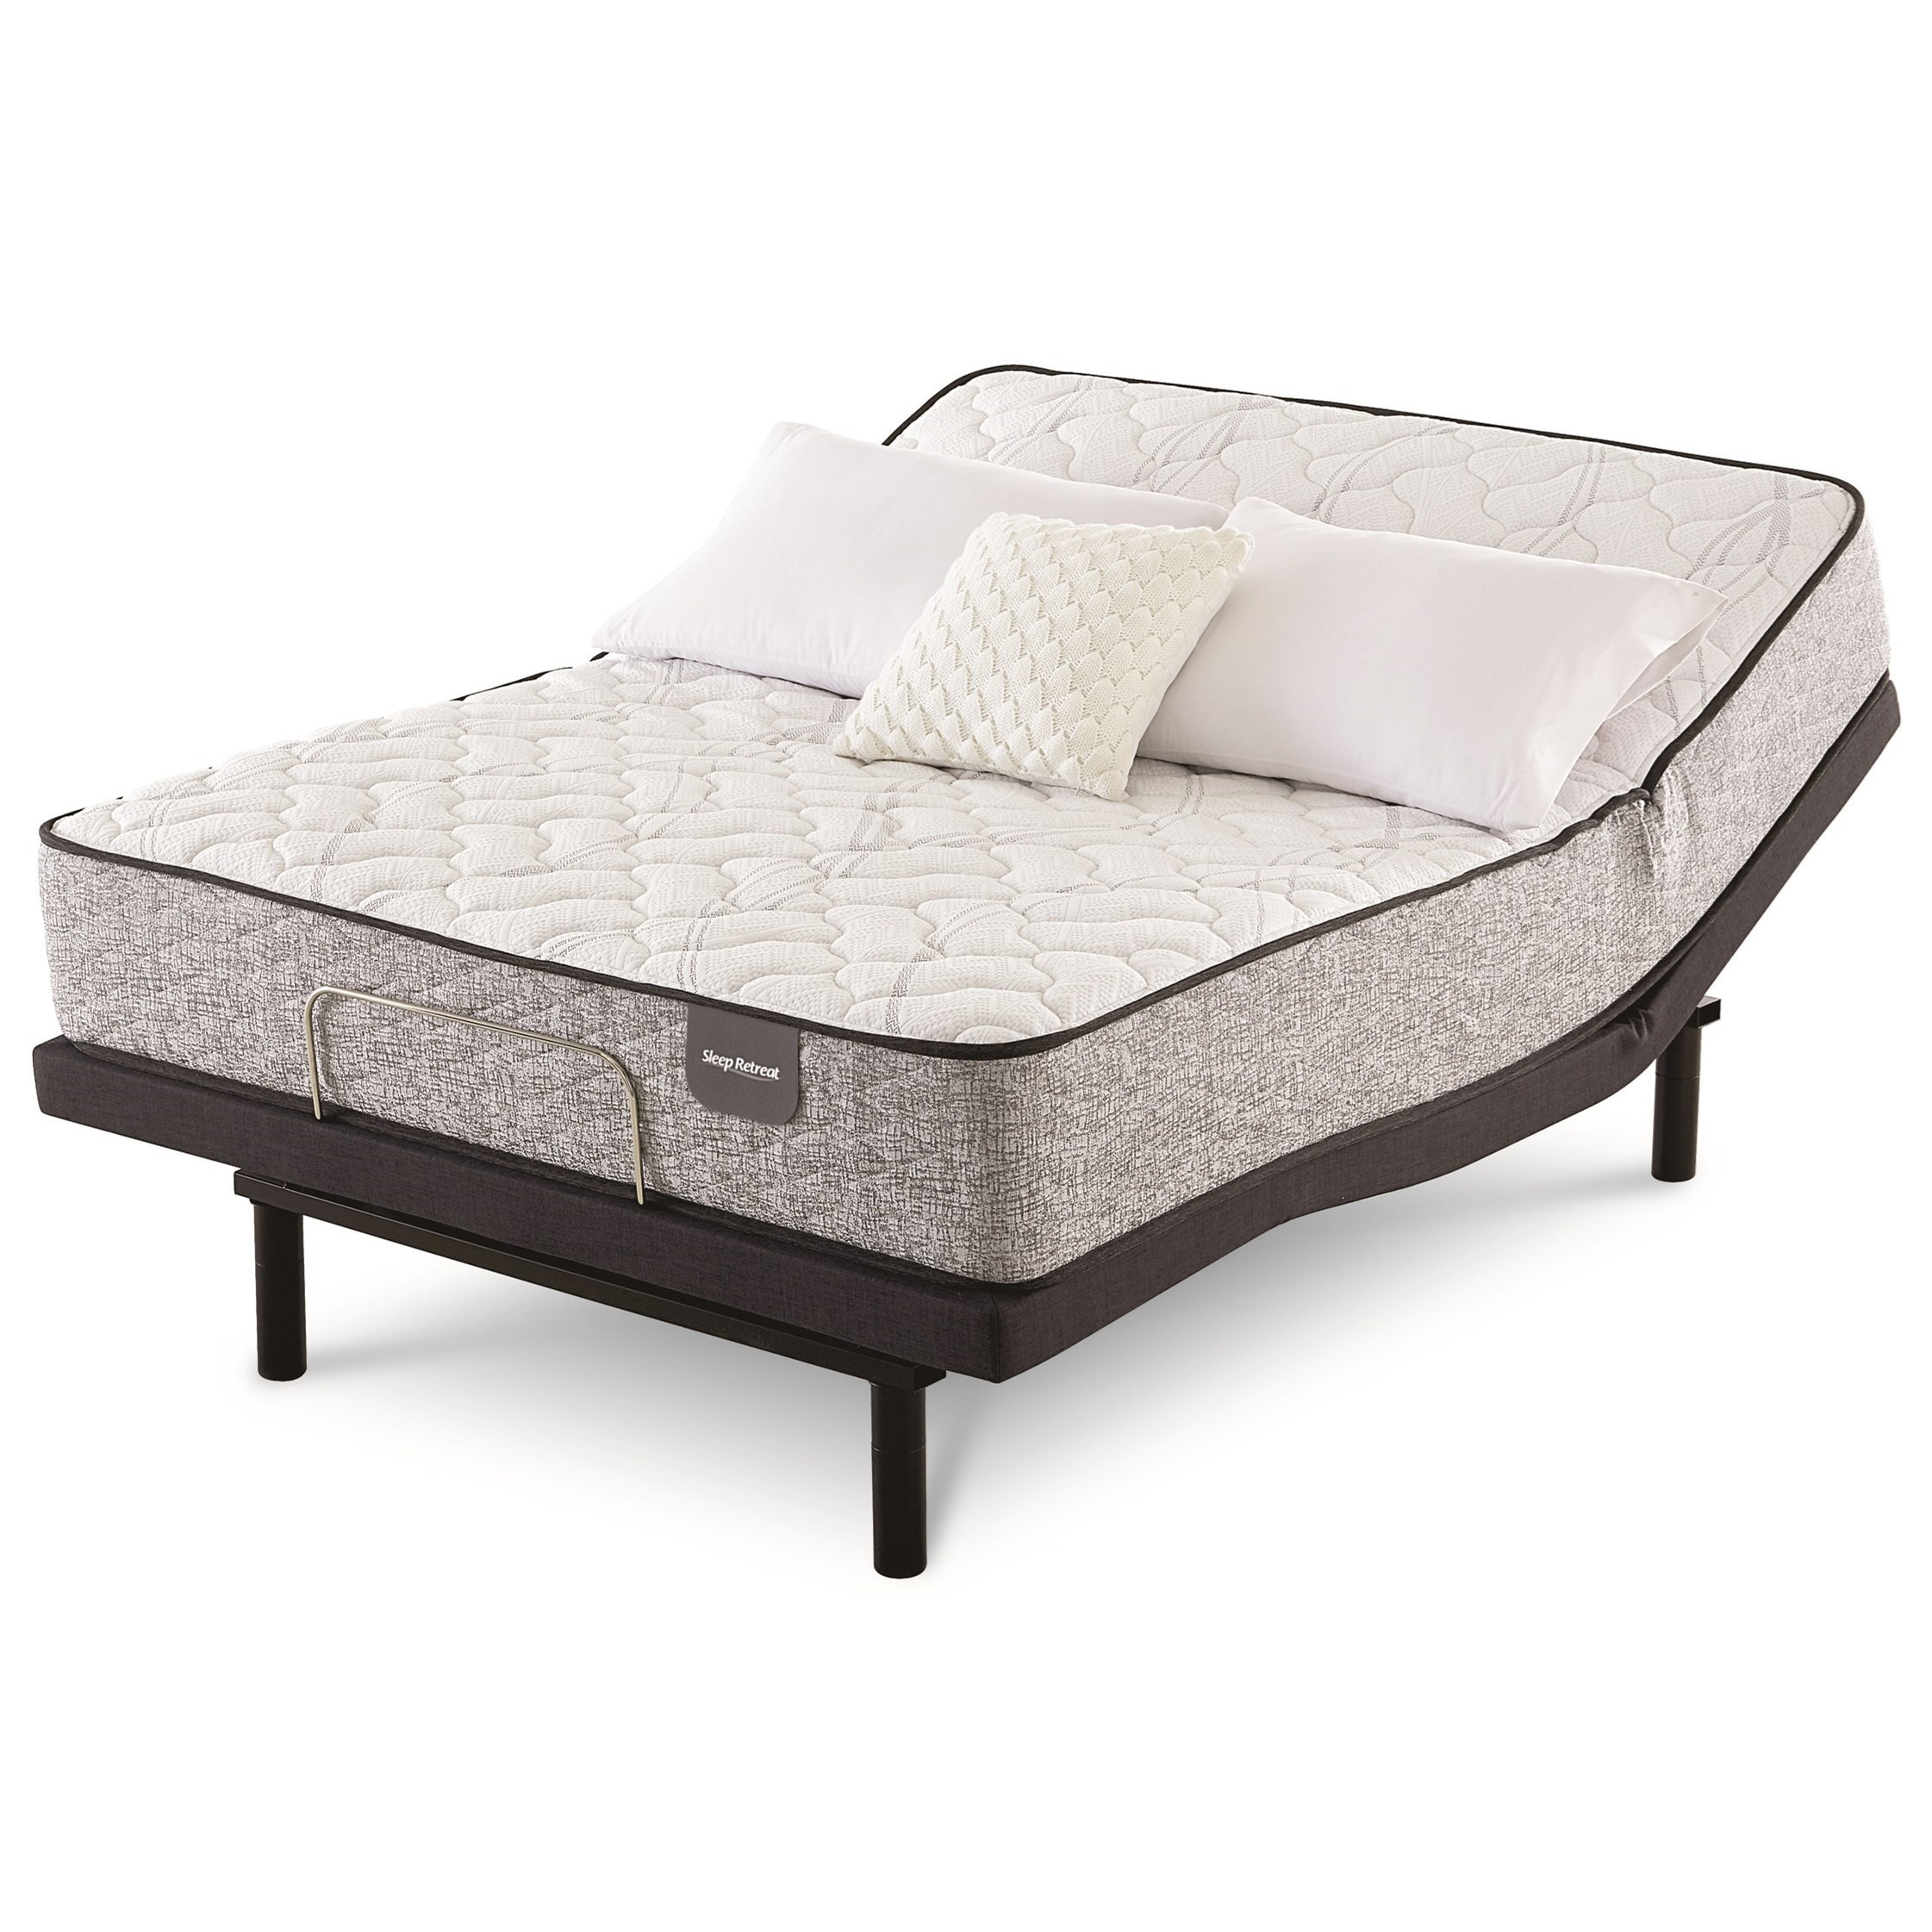 Sugar Beach Firm Queen Pocketed Coil Adj Mattress Set by Serta at Walker's Mattress